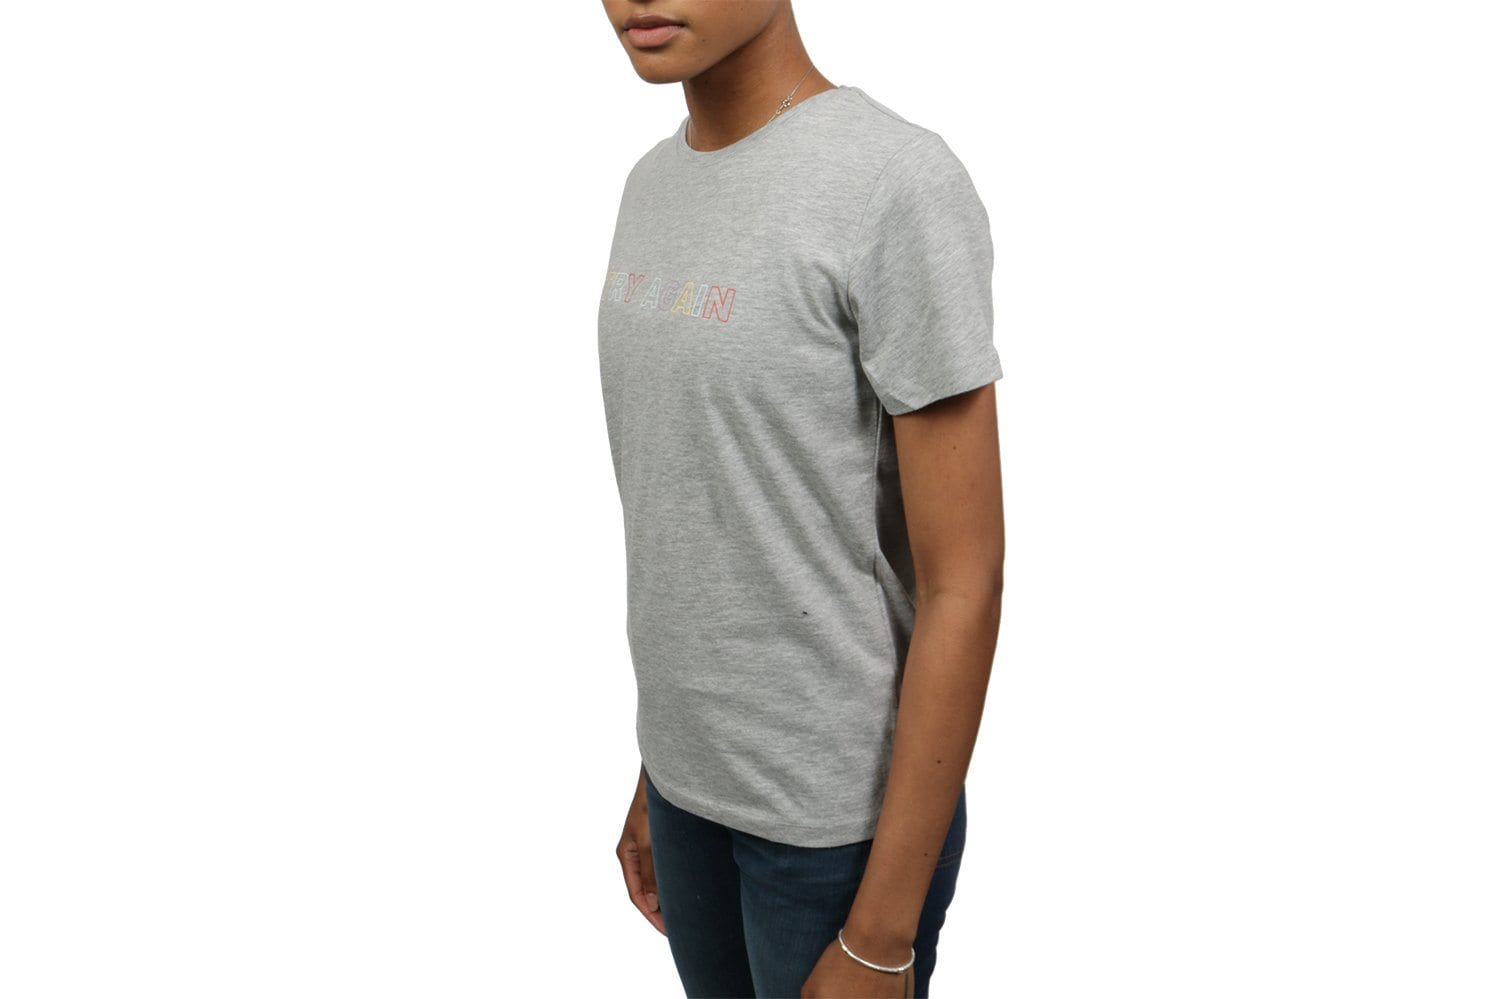 TRY AGAIN TEE - 001019 WOMENS SOFTGOODS NAKD